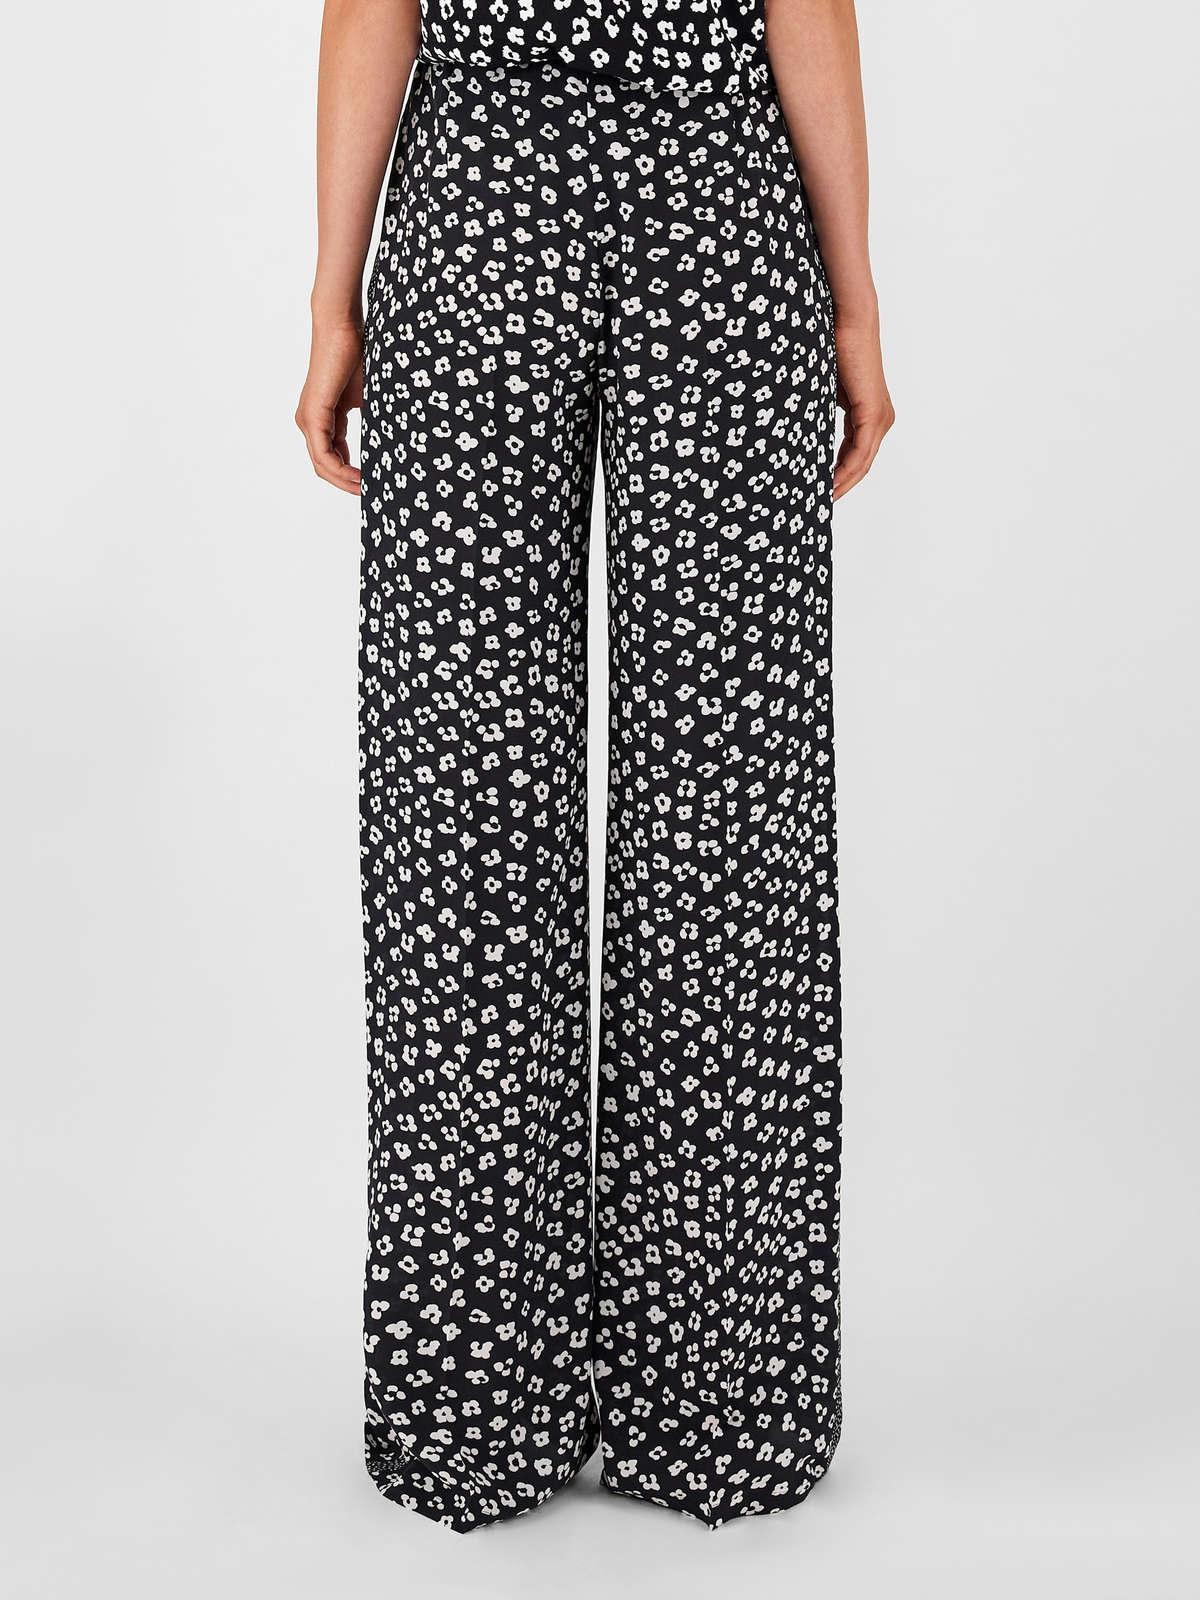 Womens Max Mara Trousers And Jeans | Printed Silk Crepe De Chine Trousers Black